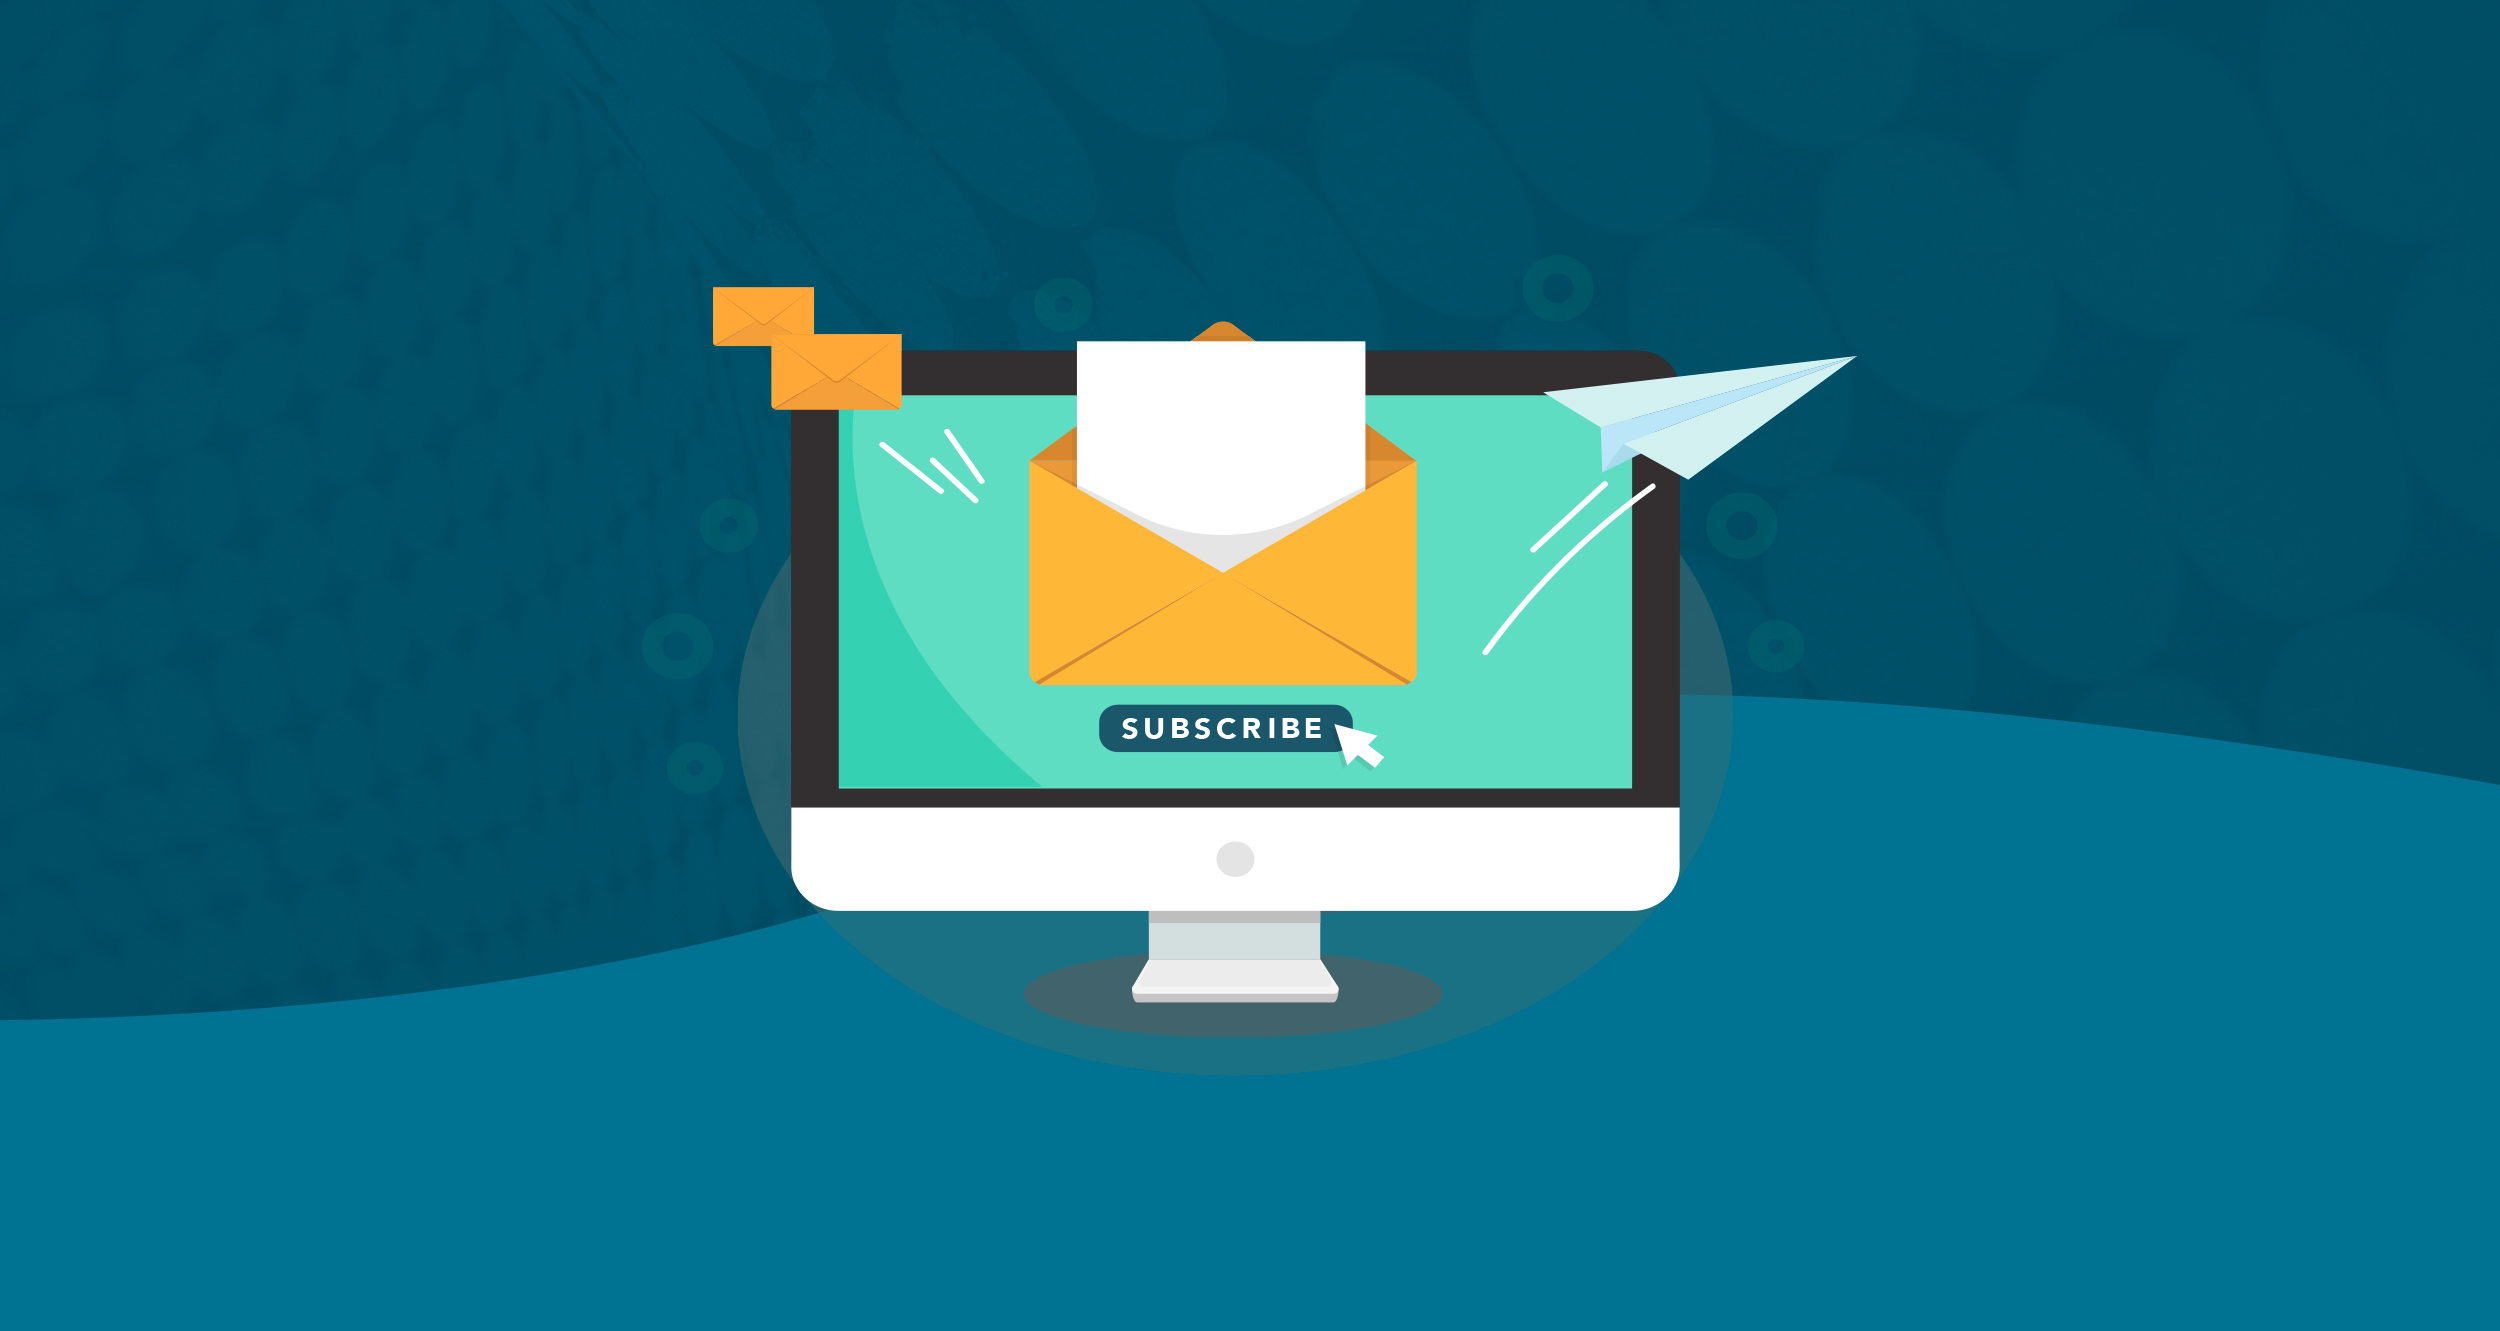 Improve Email Engagement: 8 Ways to Get More Opens, Reads, and Clicks